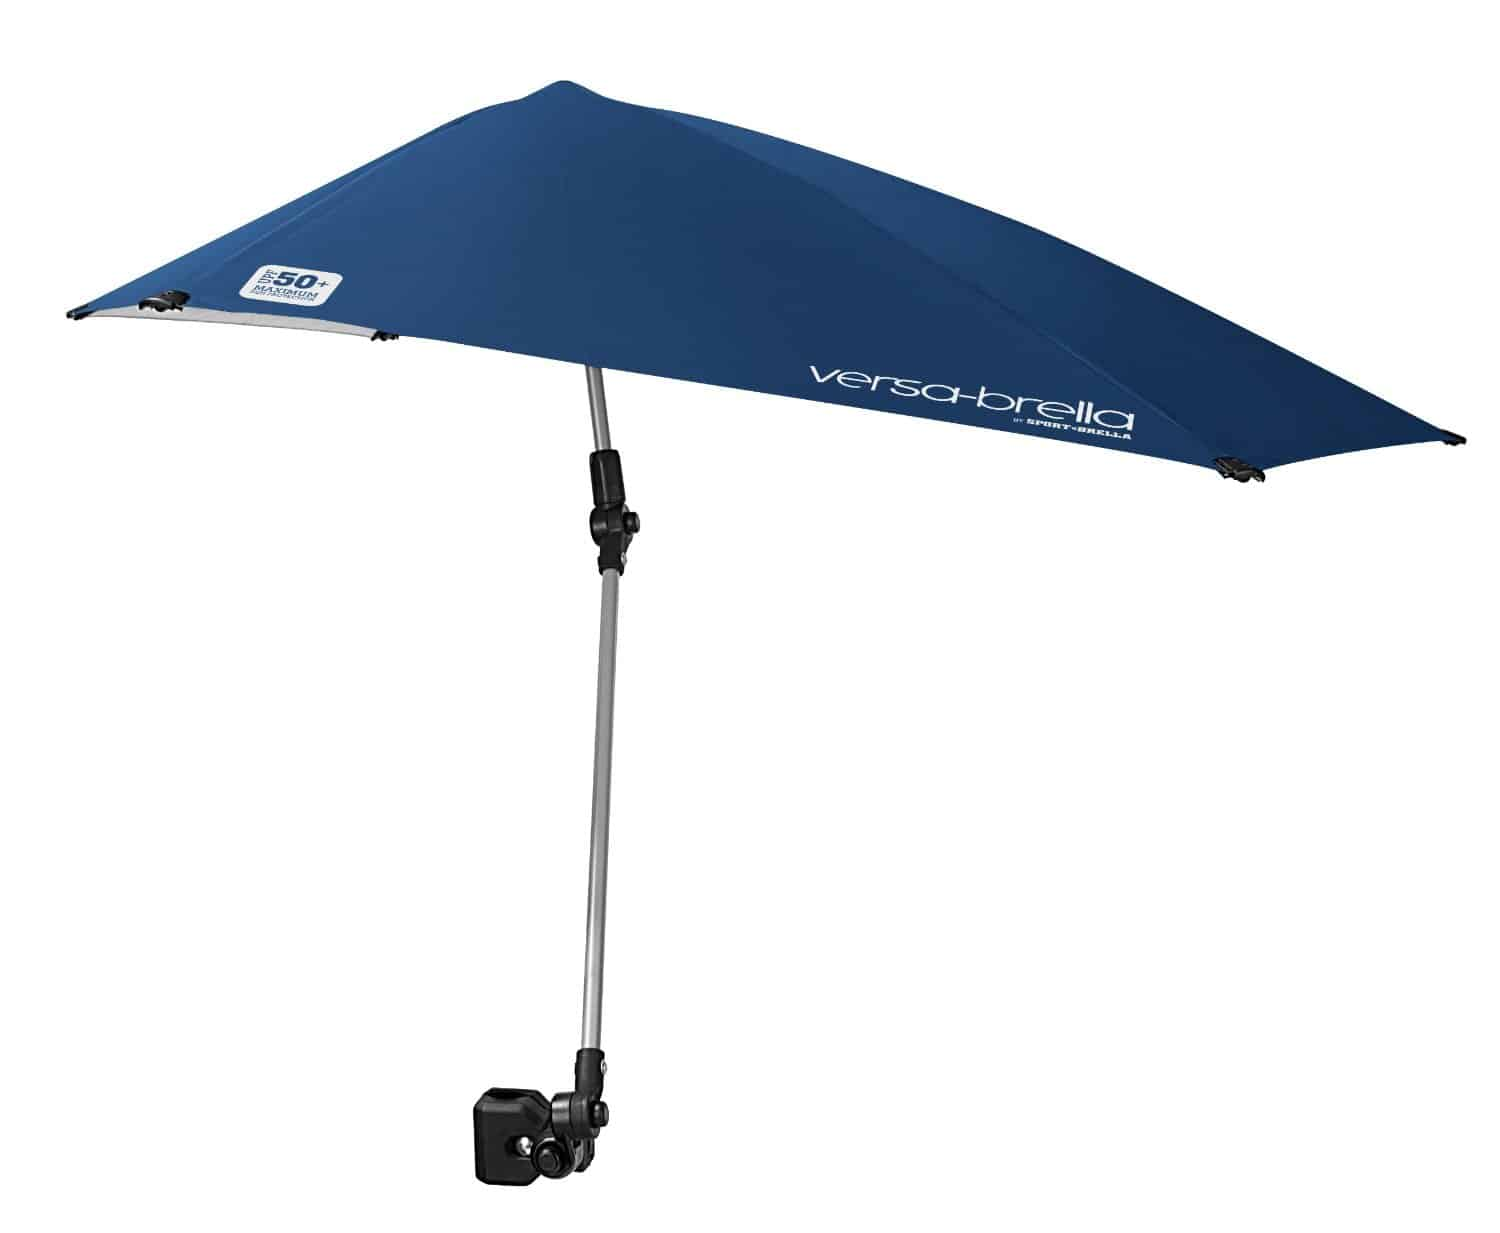 Sport-Brella Versa-Brella All Position Umbrella Gift Idea for Outdoor People